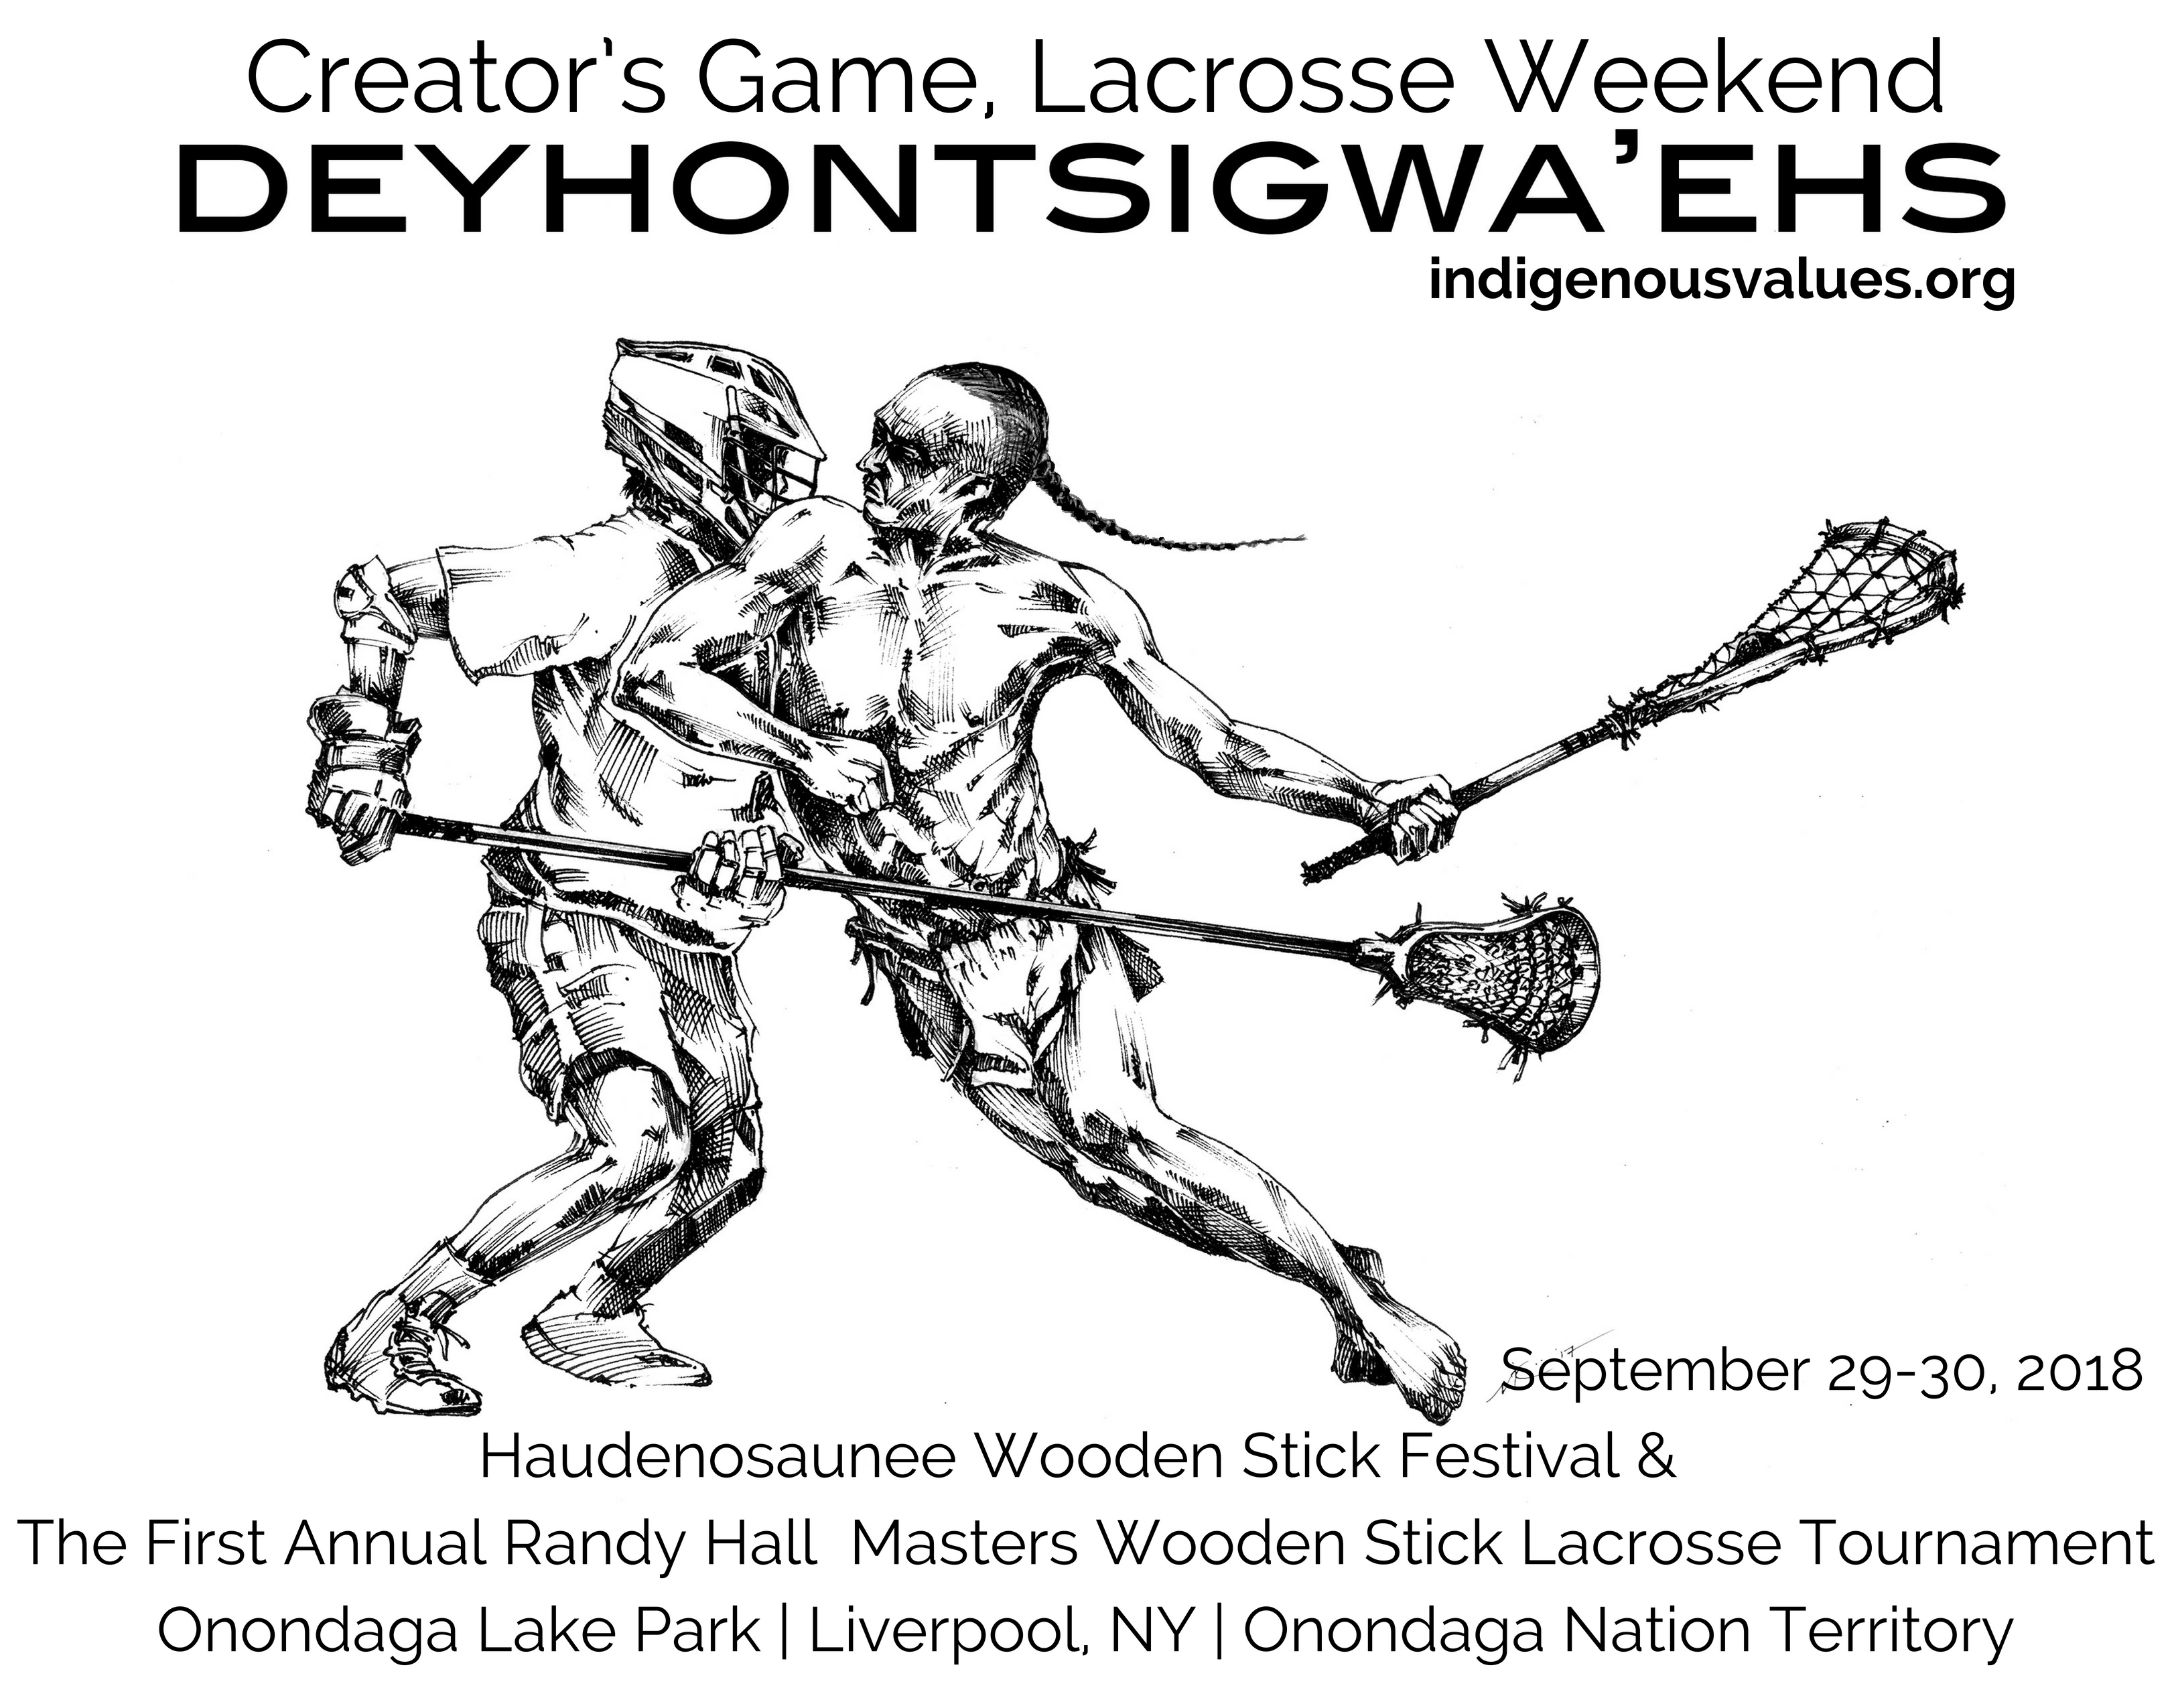 deyhontsigwa ehs the creator s game lacrosse weekend 2018